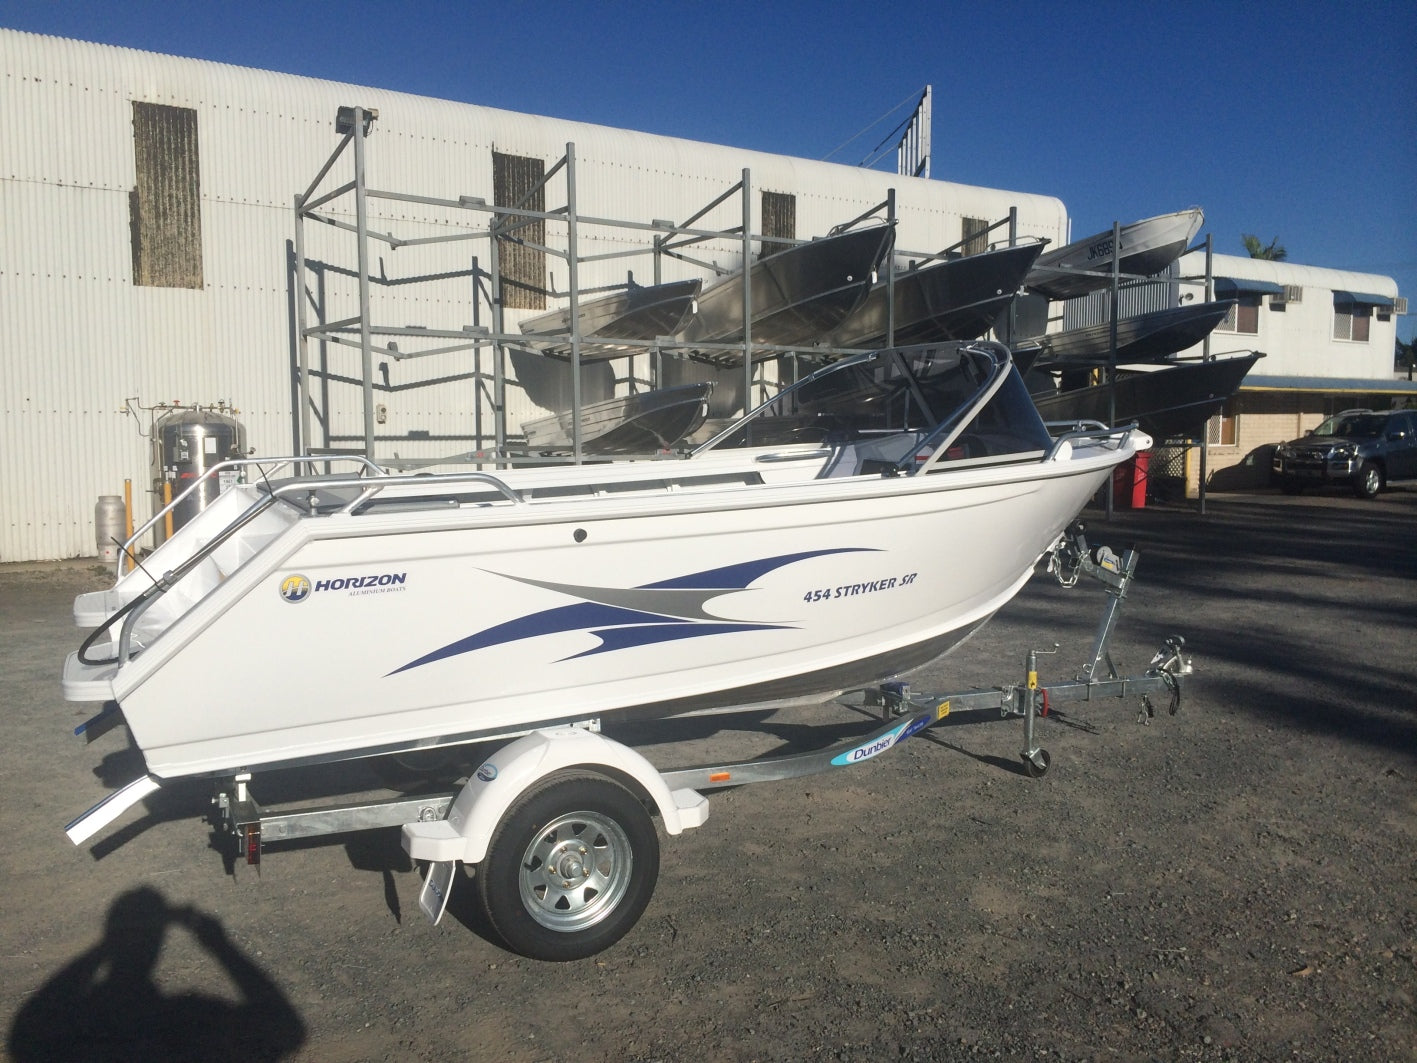 Horizon 454 Stryker SR Runabout - waves-overseas